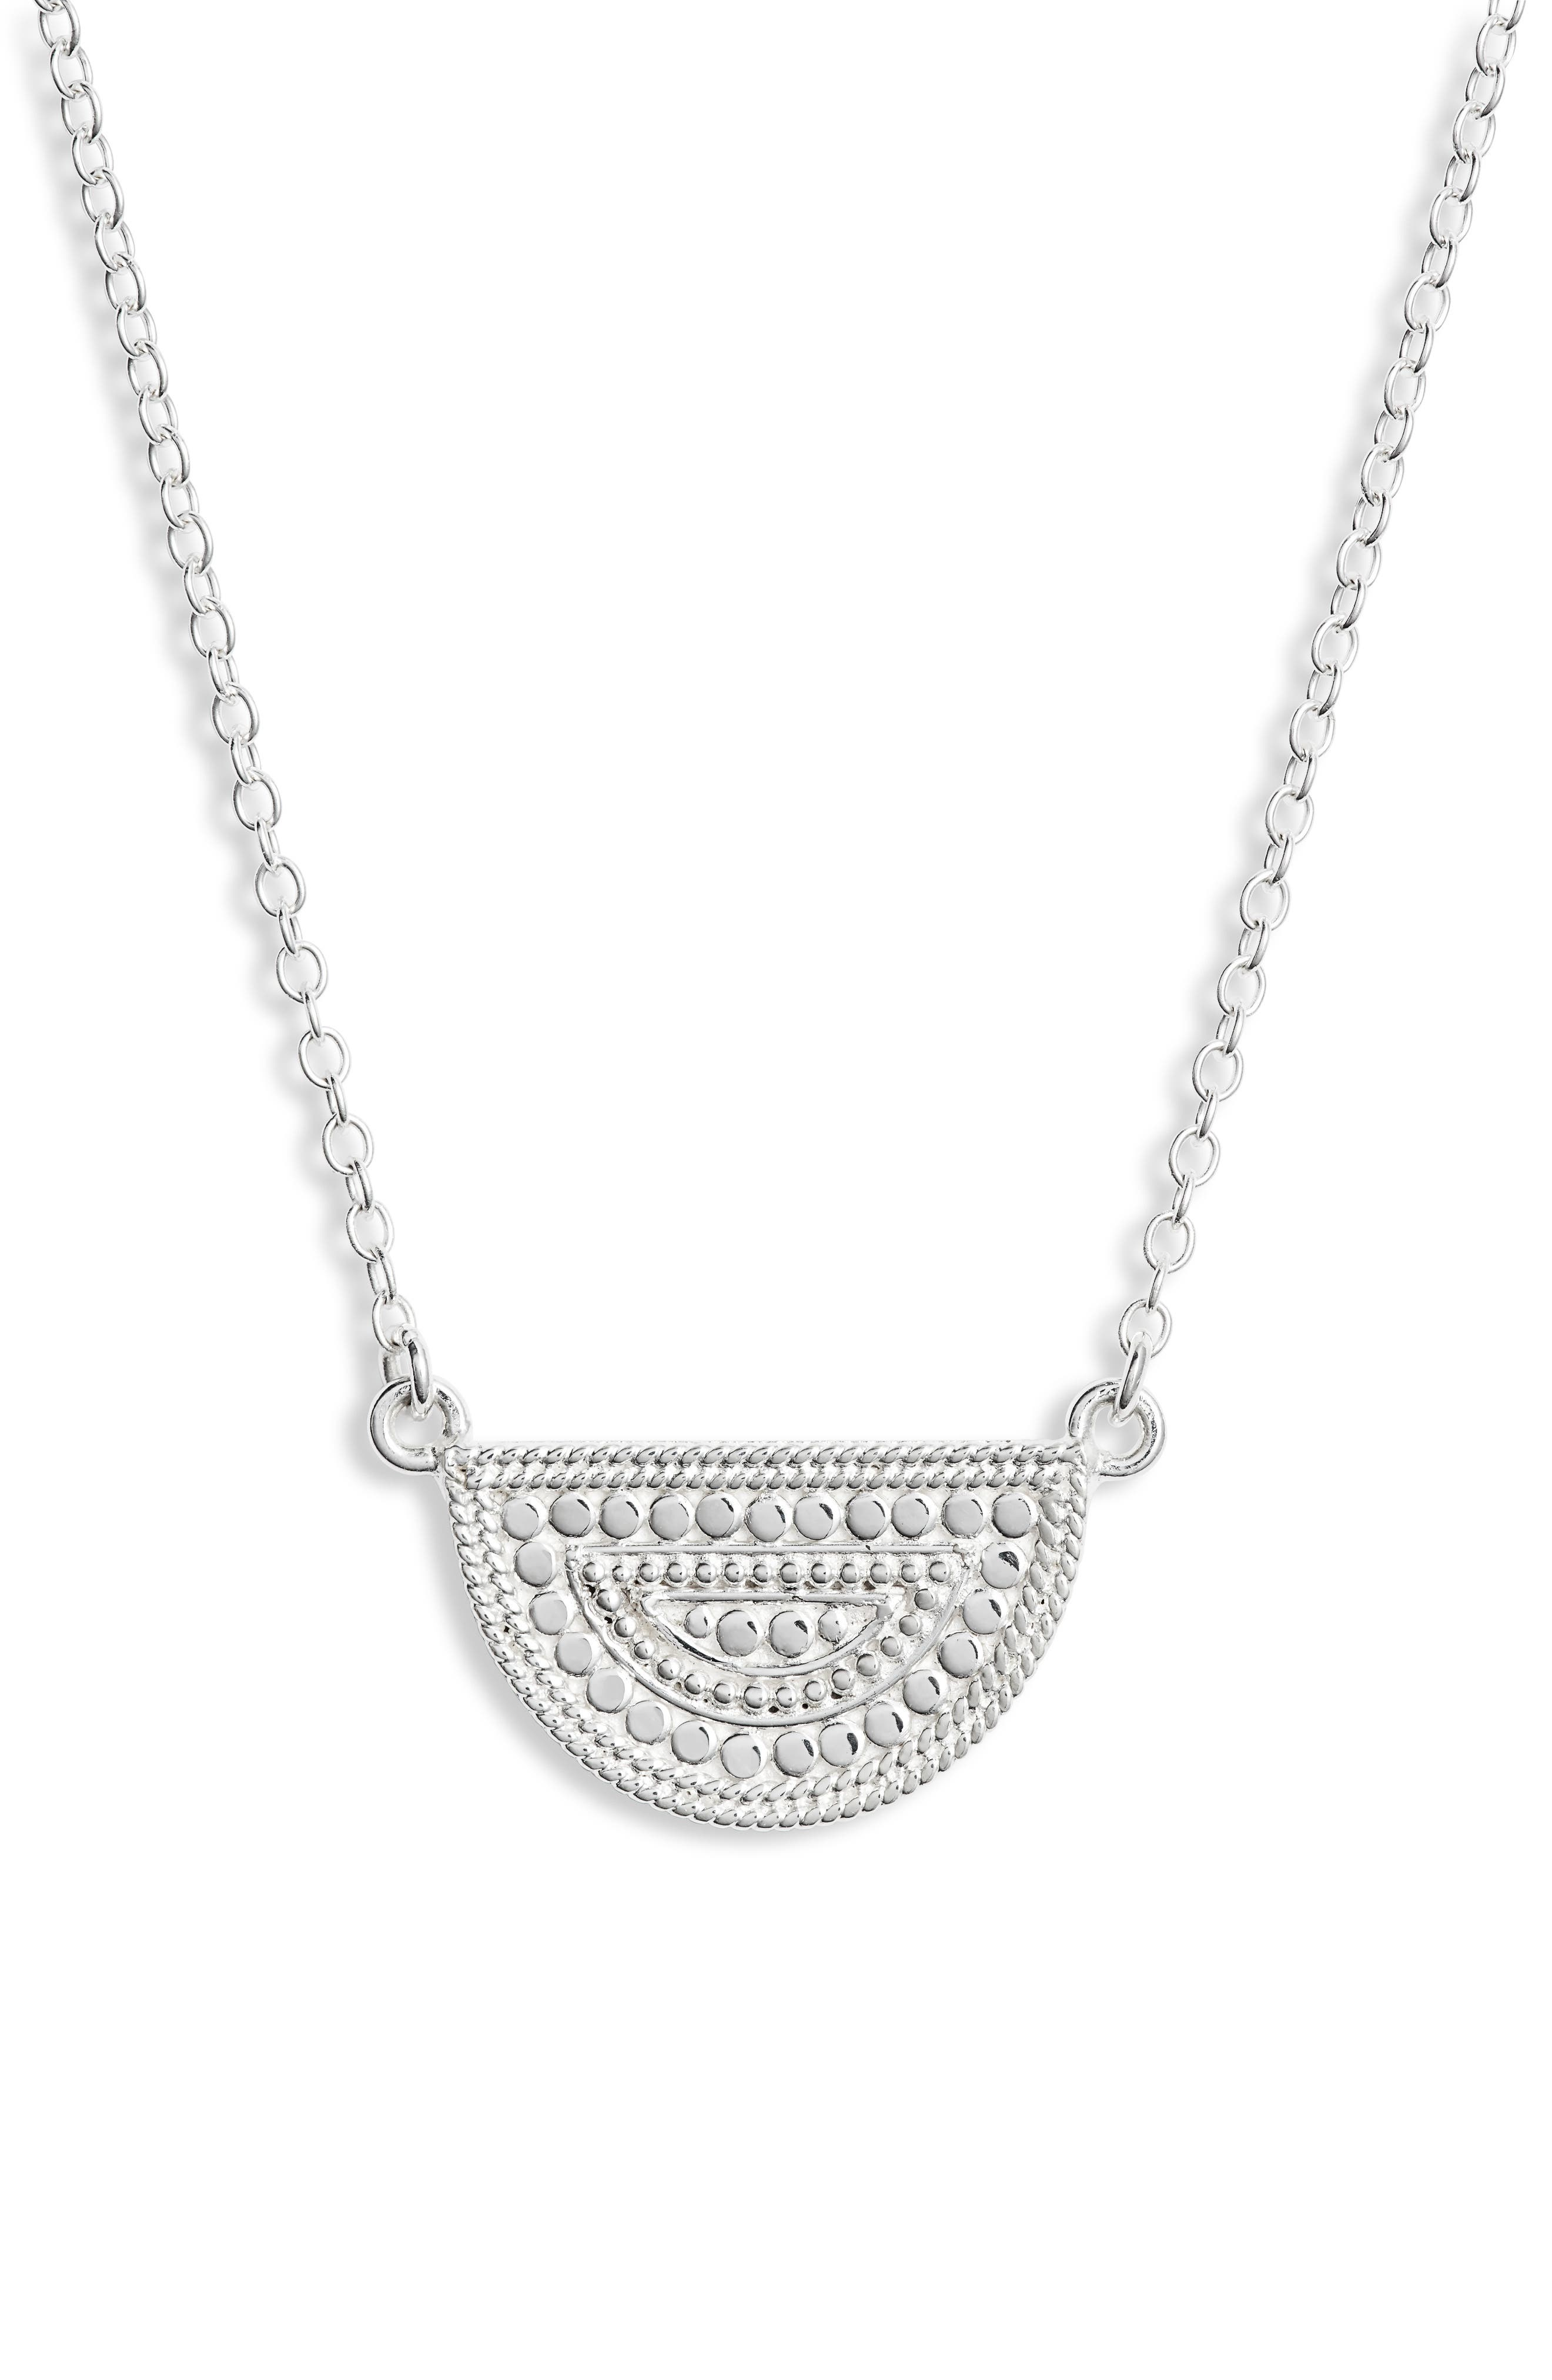 ANNA BECK Beaded Reversible Half-Moon Necklace in Black